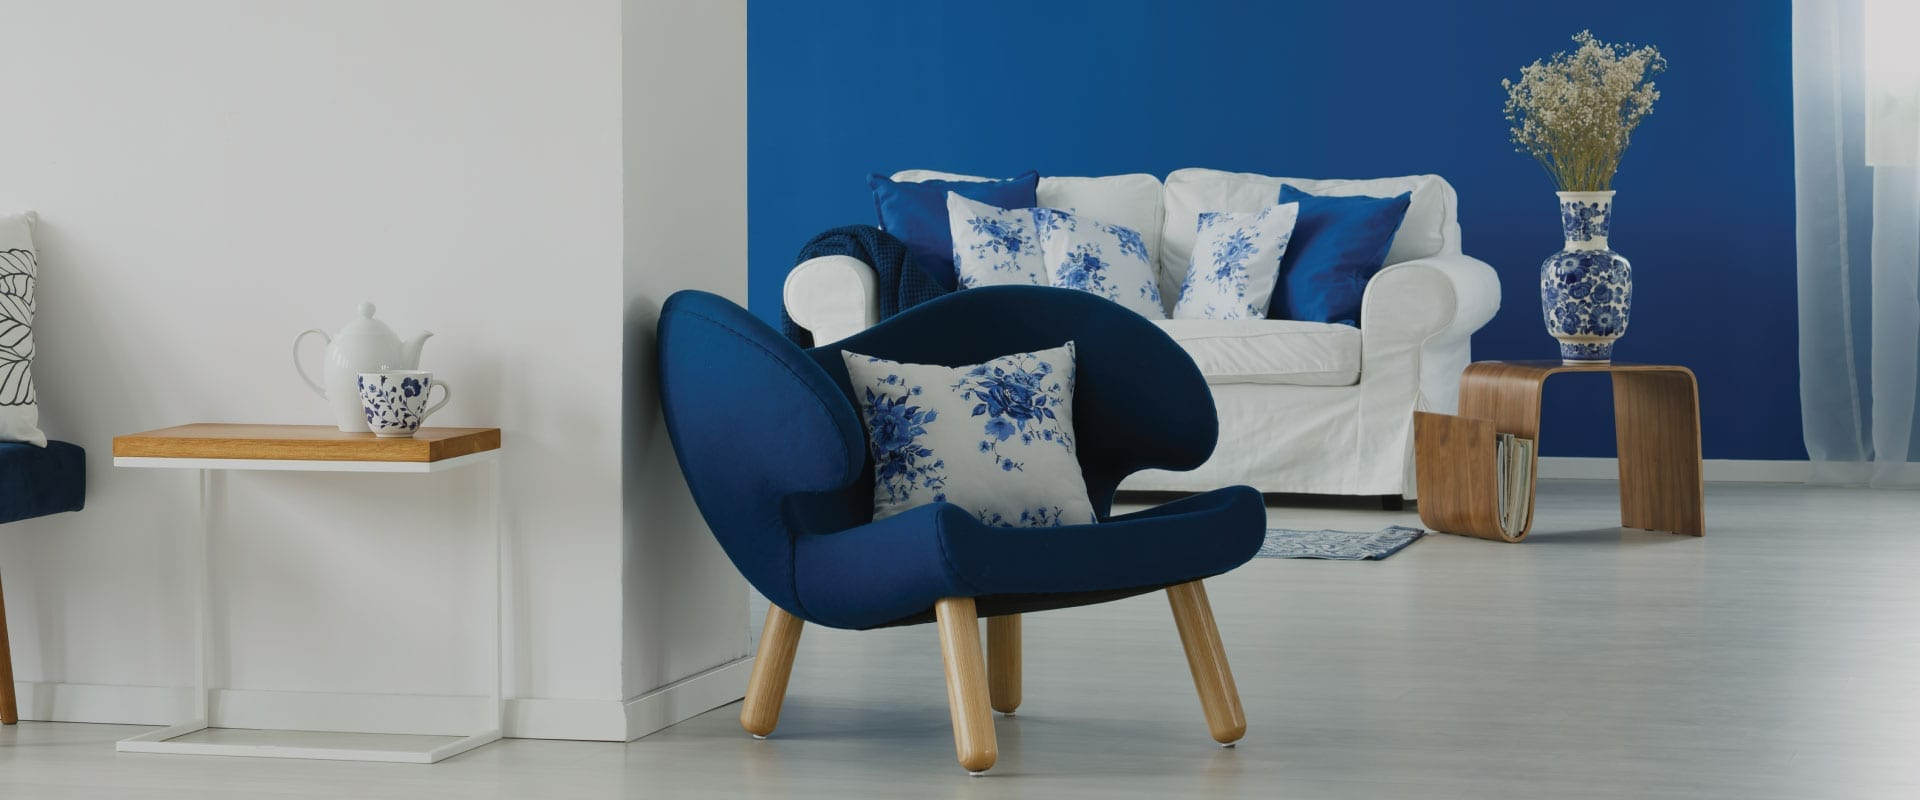 Blue and white room showing off colour selection